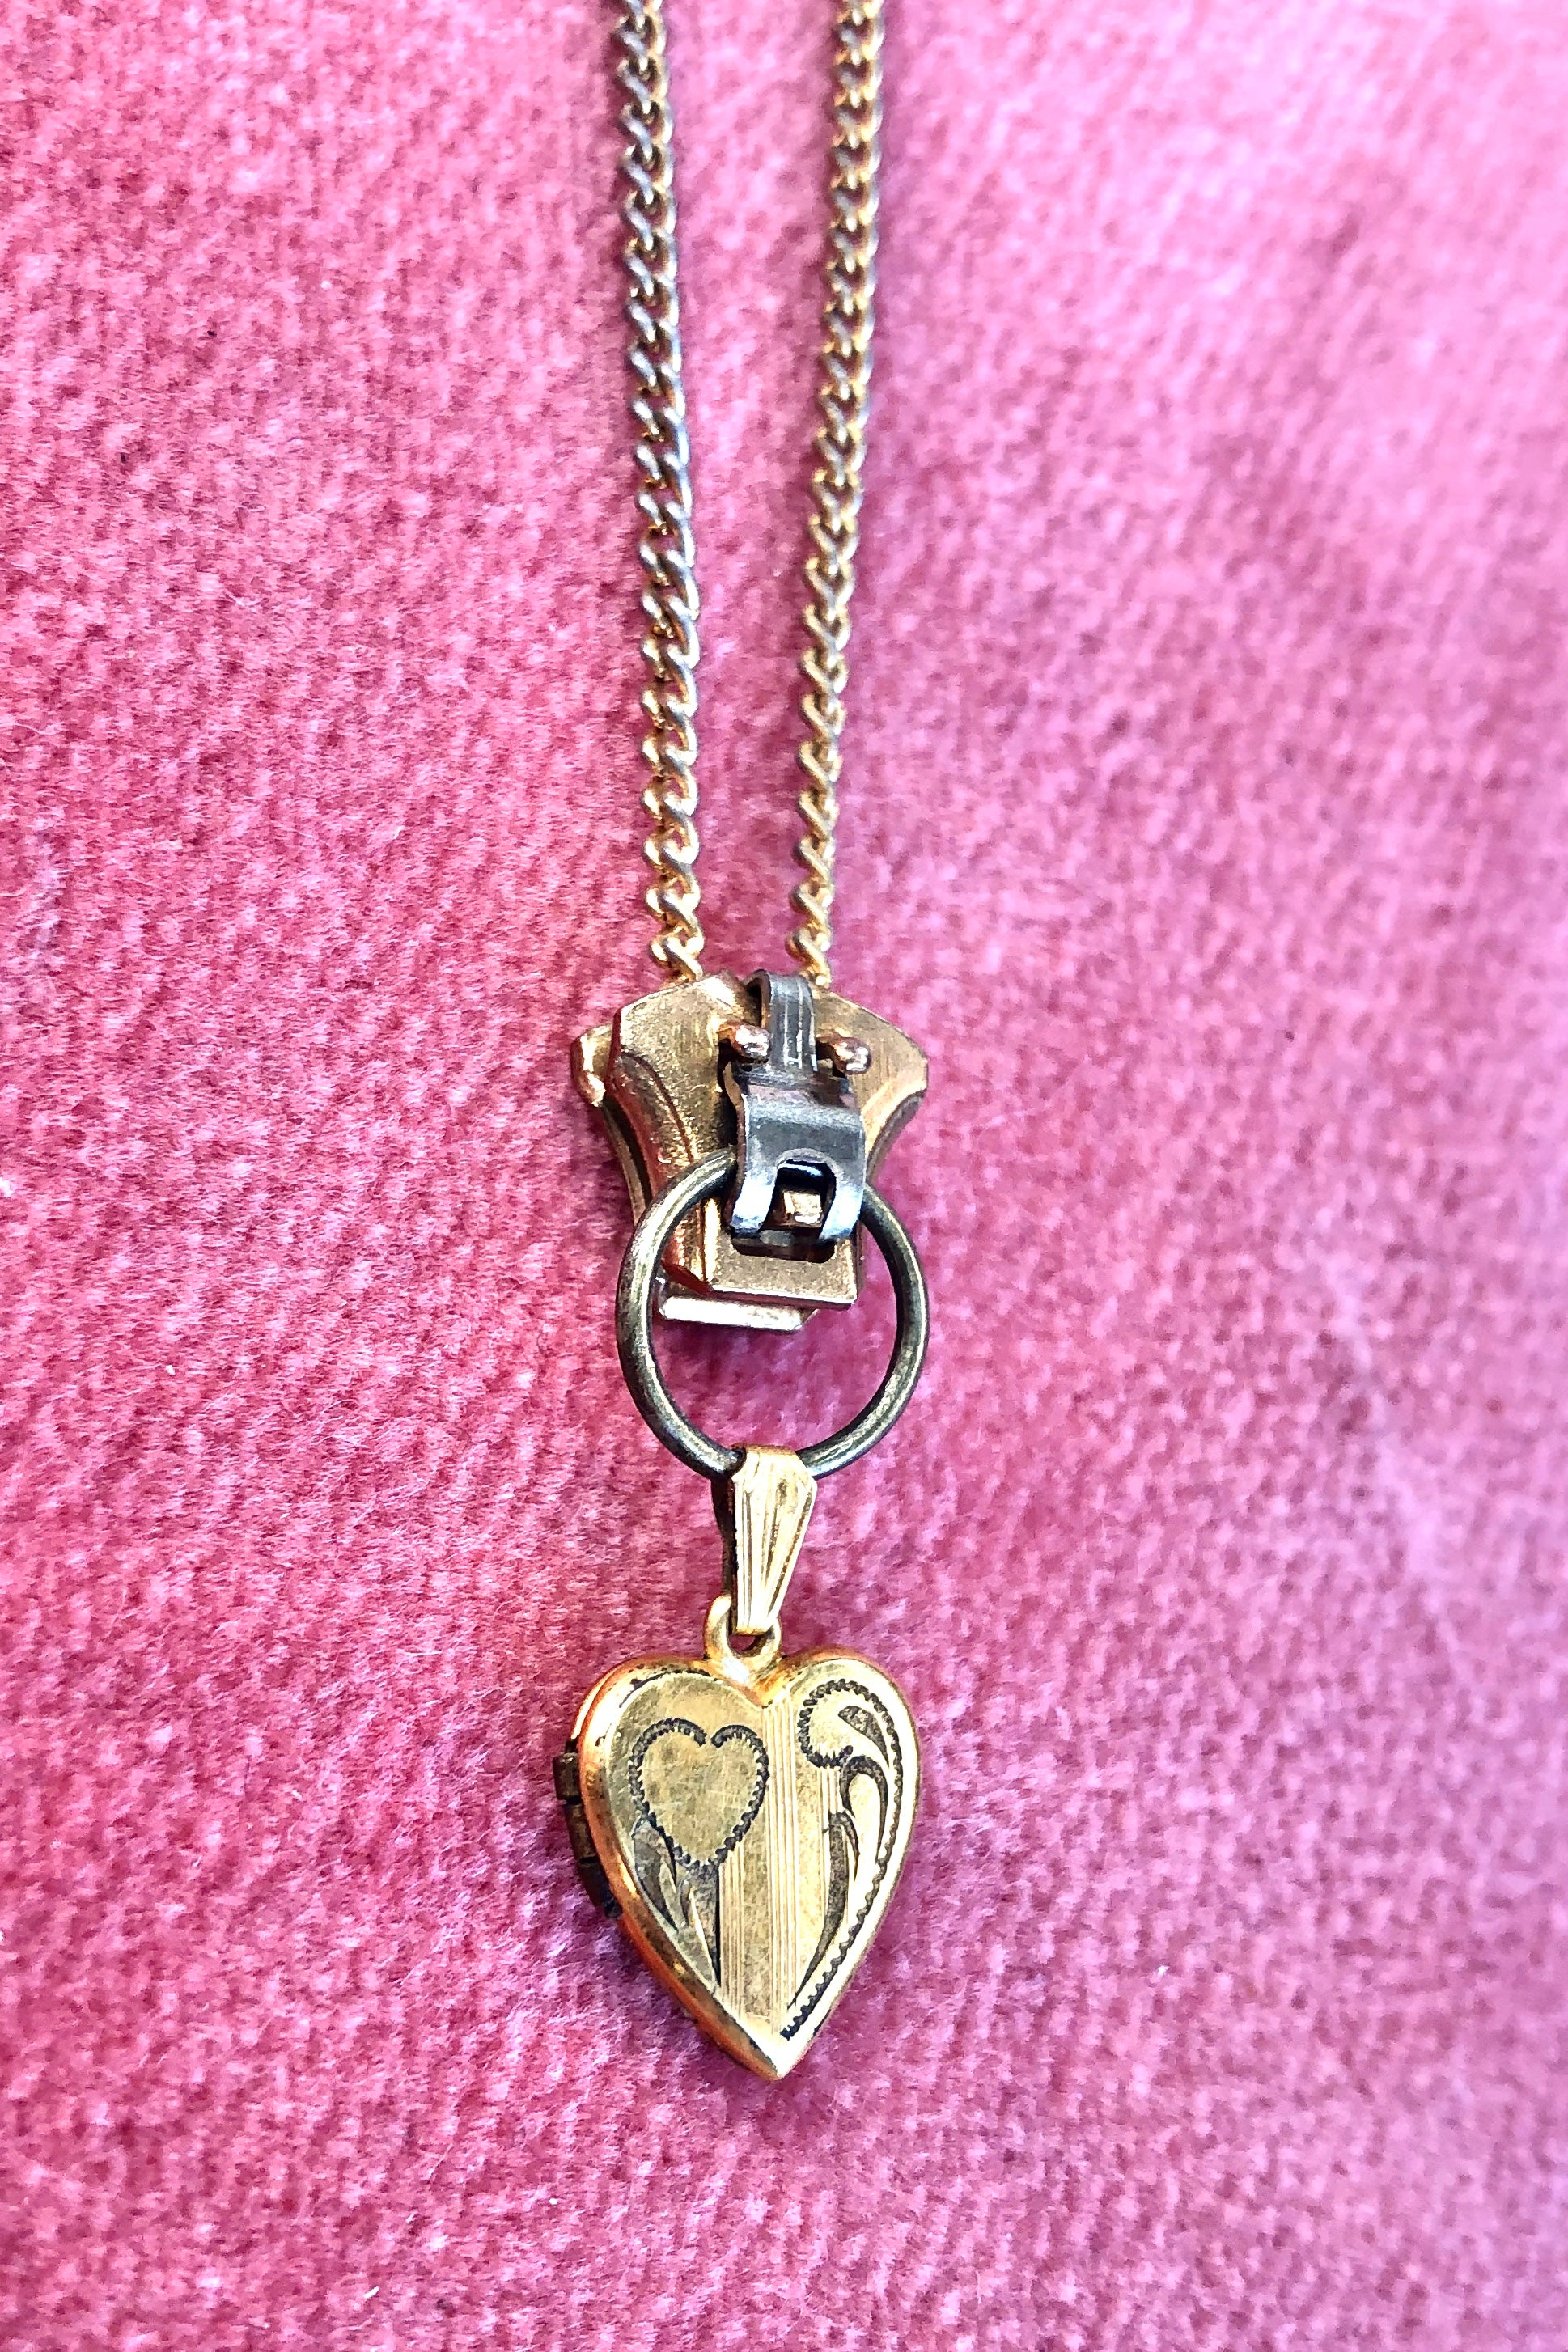 Vintage Heart and Zipper Necklace!